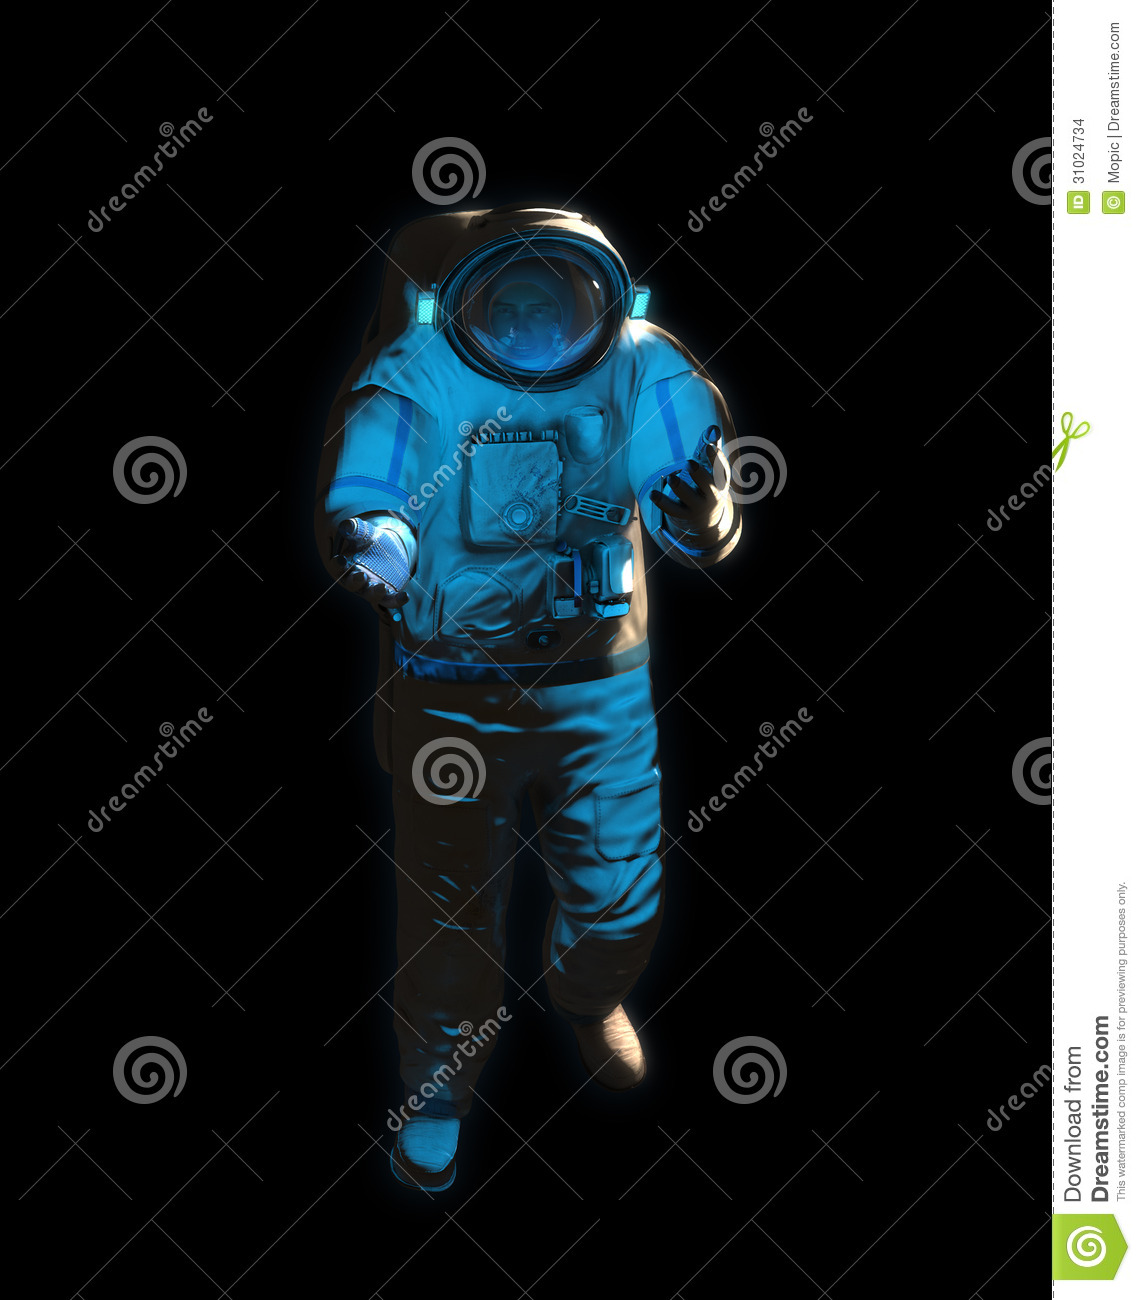 astronauts in space weightless - photo #39